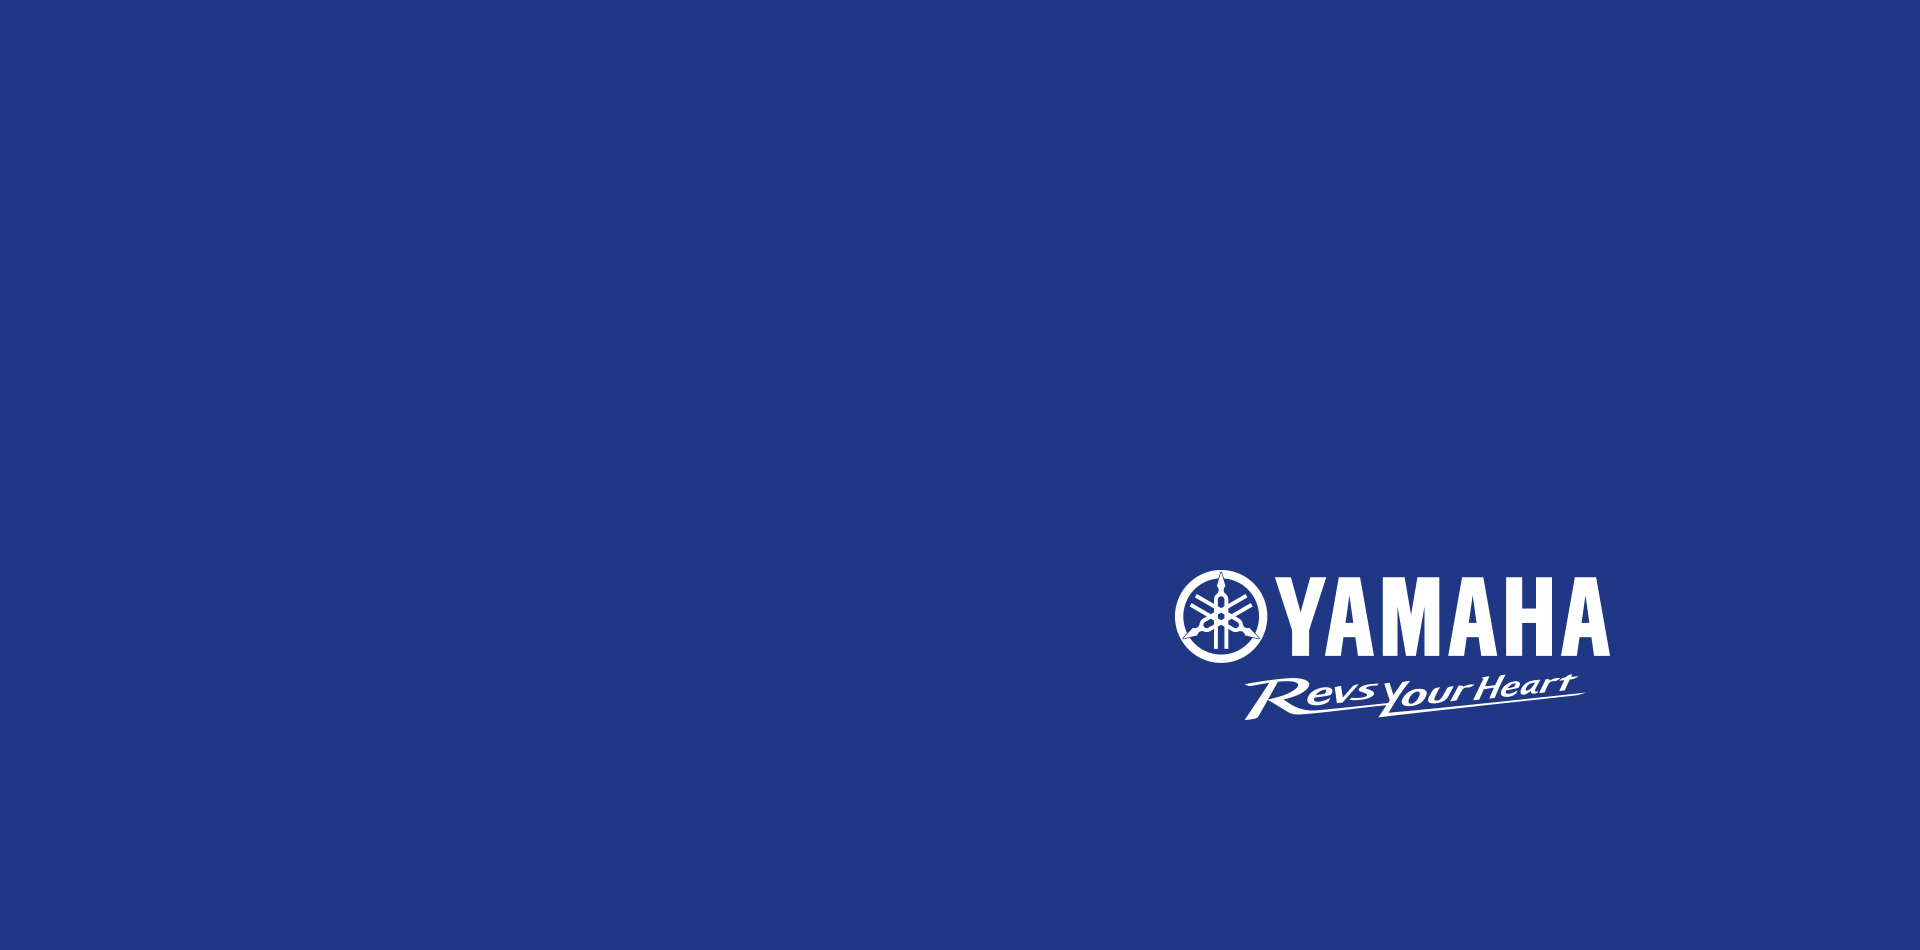 yamaha motor co ltd announces yamaha factory racing